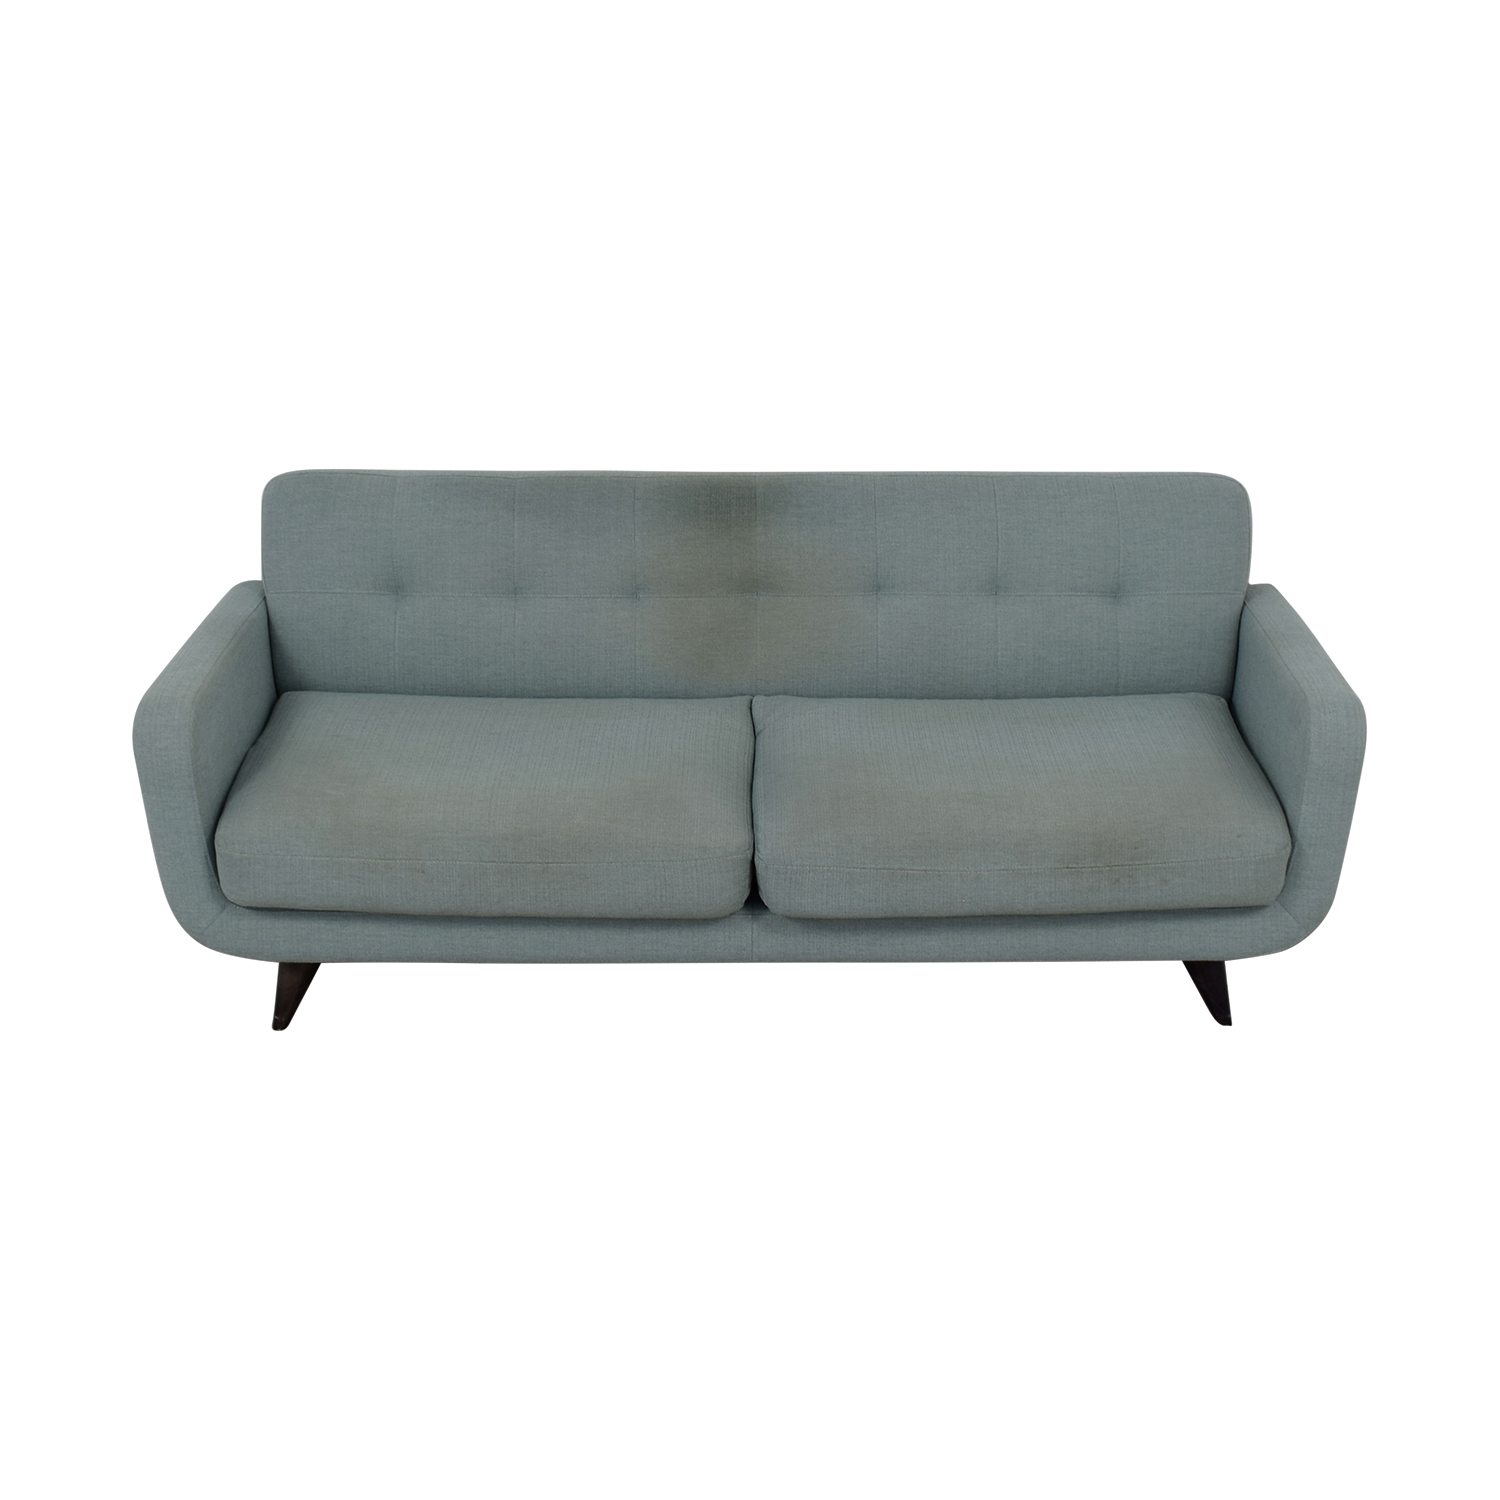 Room & Board Room & Board Anson Grey Two-Cushion Sofa on sale